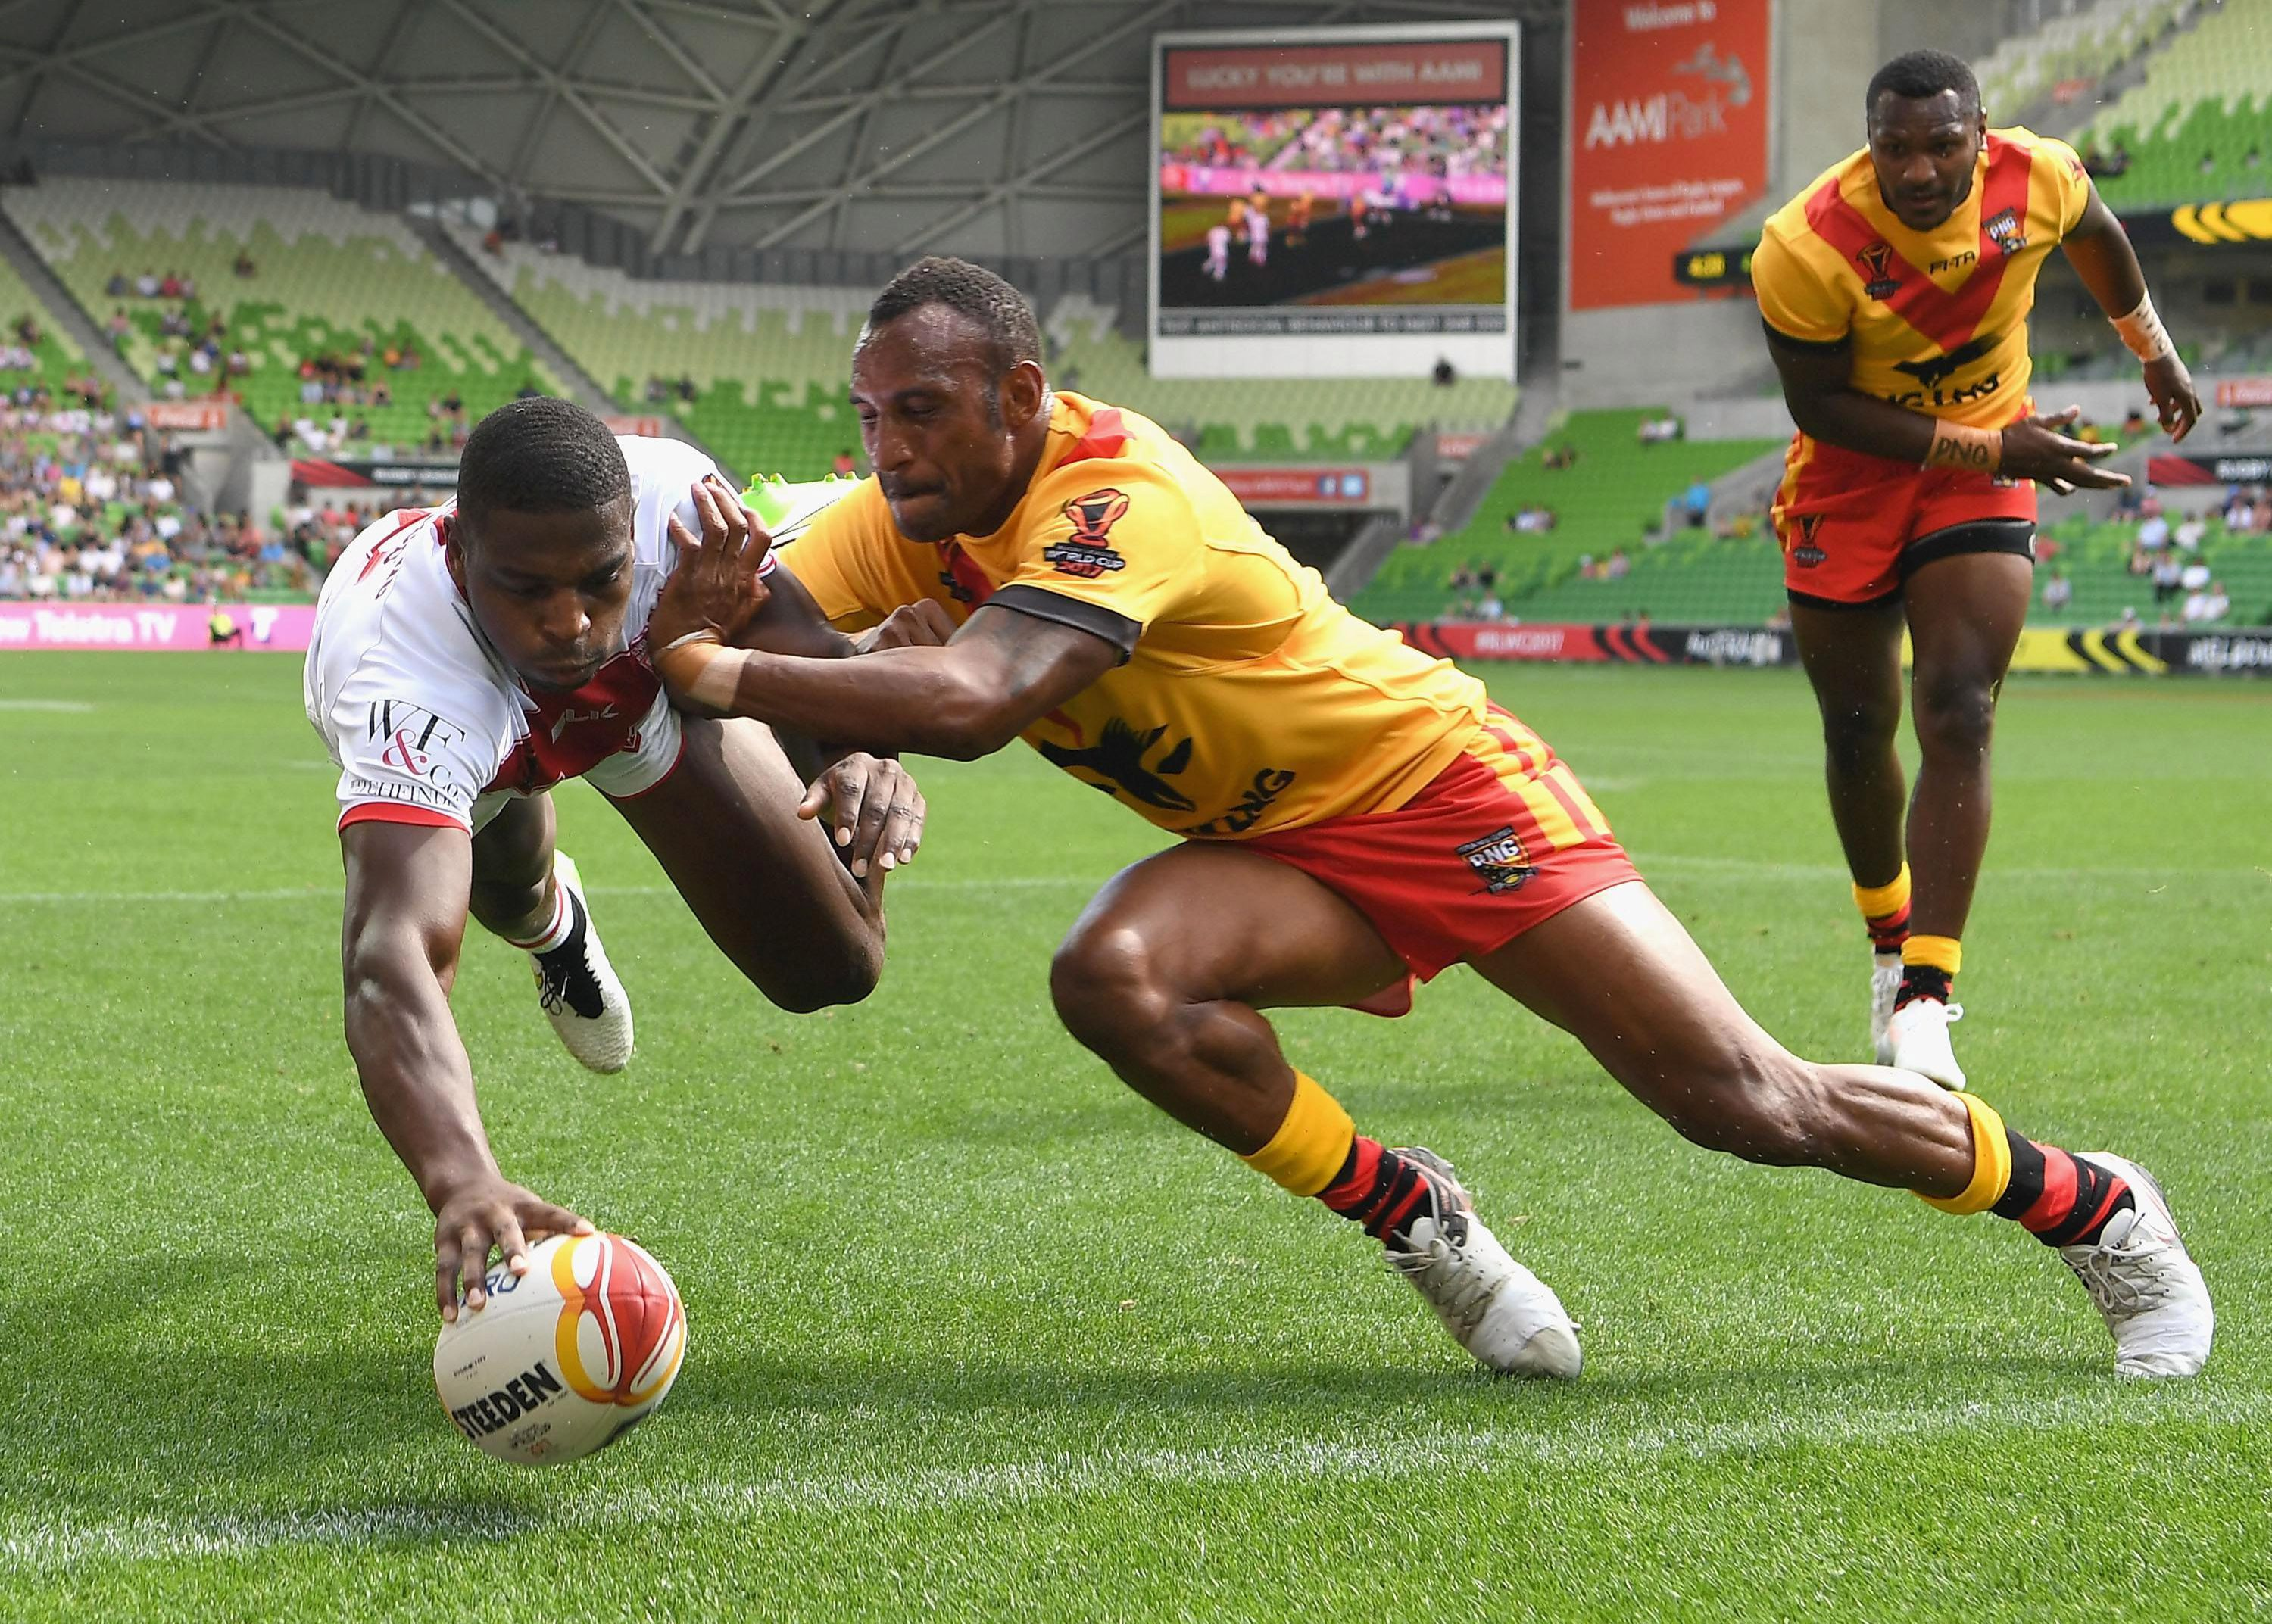 Huddersfield and England ace Jermaine McGillvary will have a new club coach in Simon Woolford